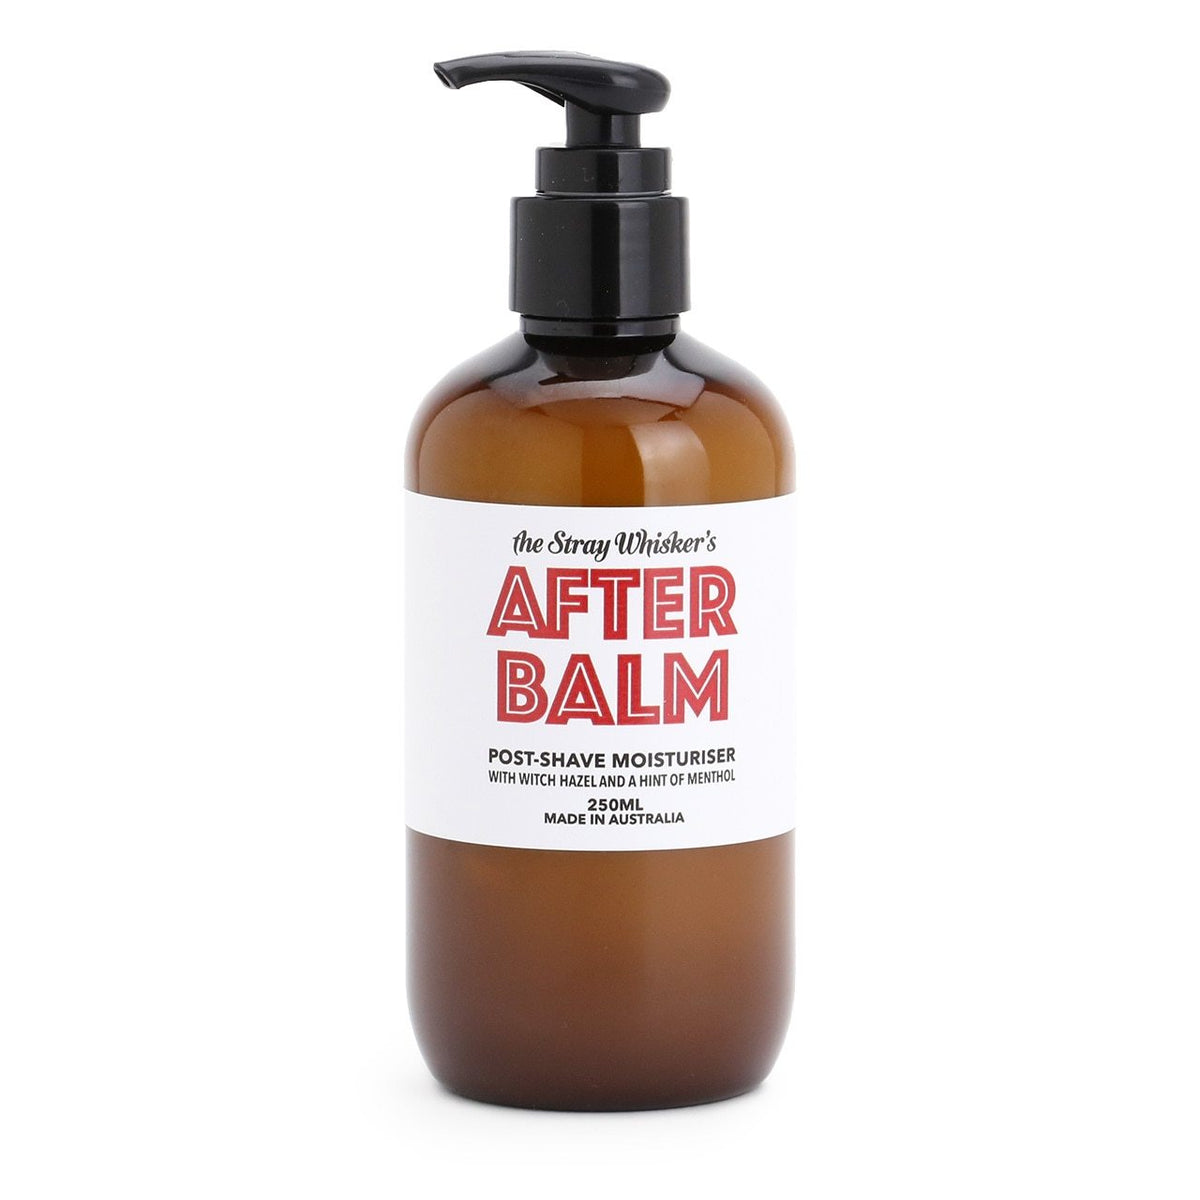 After Balm Post Shave Moisturiser - 250ml